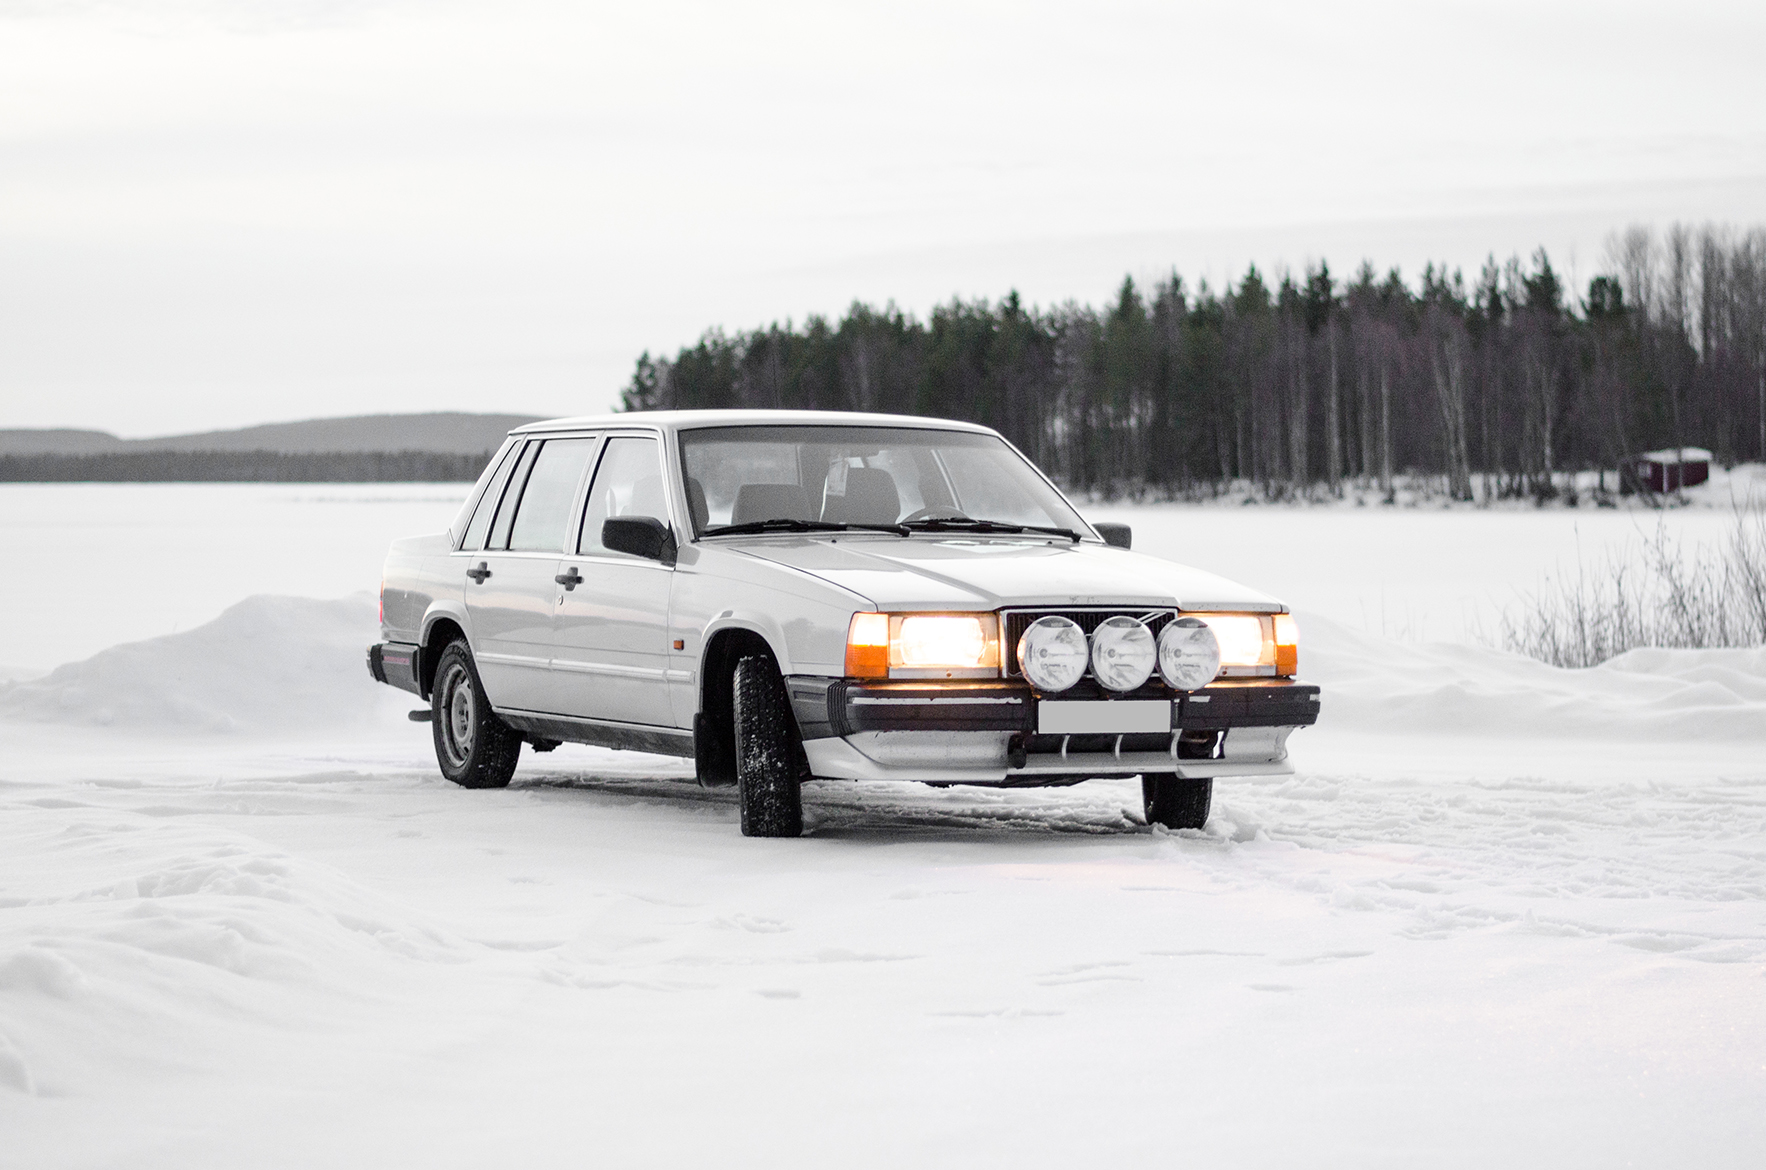 Benz Drift Car >> 8 Reasons Why the Volvo 740 is the Perfect First Car